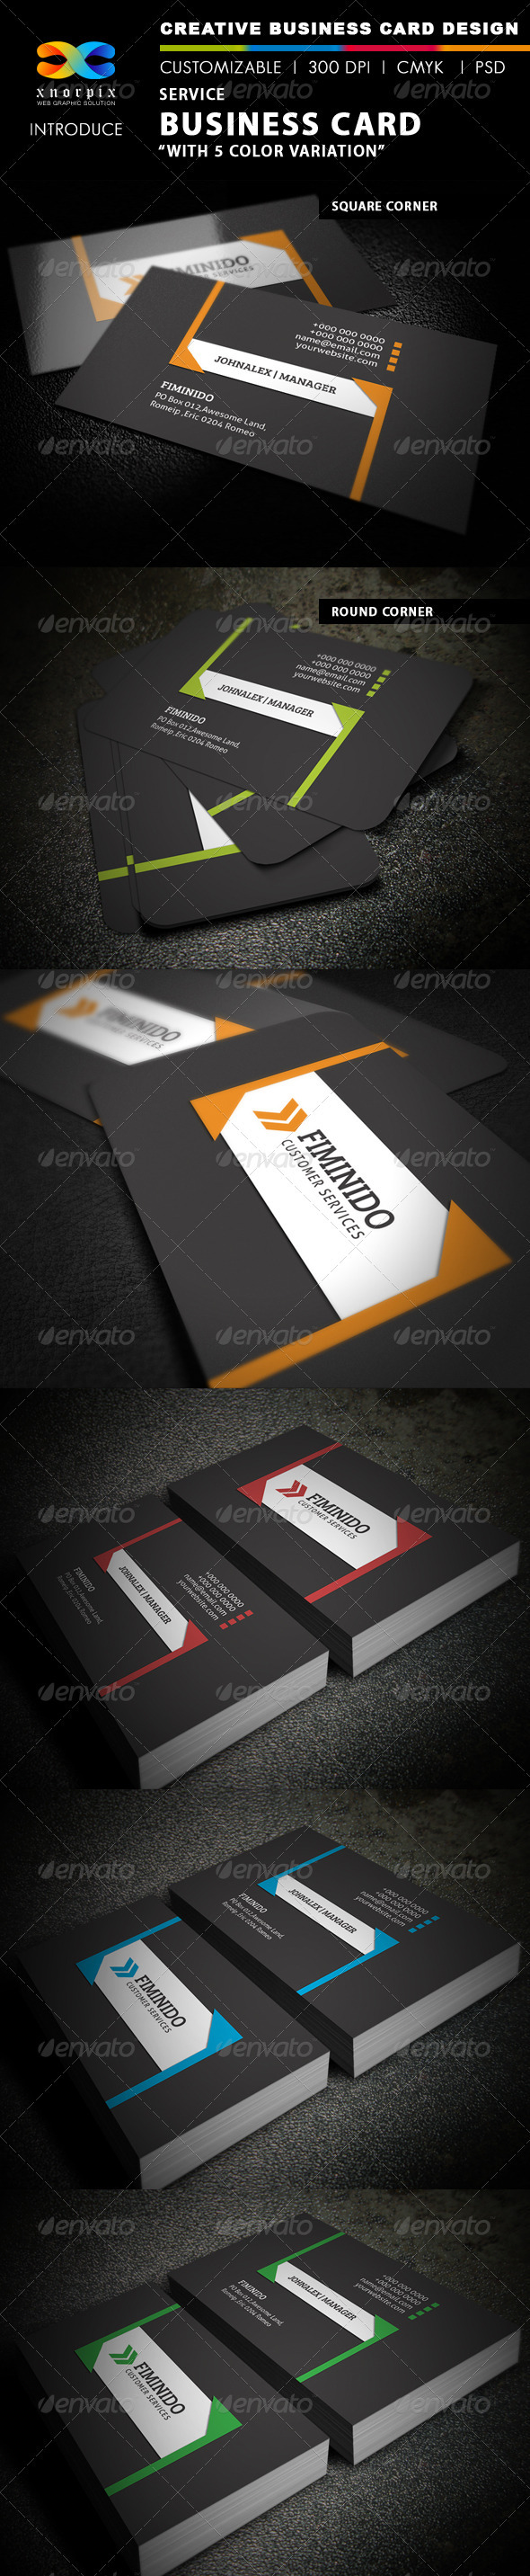 Service Business Card - Creative Business Cards